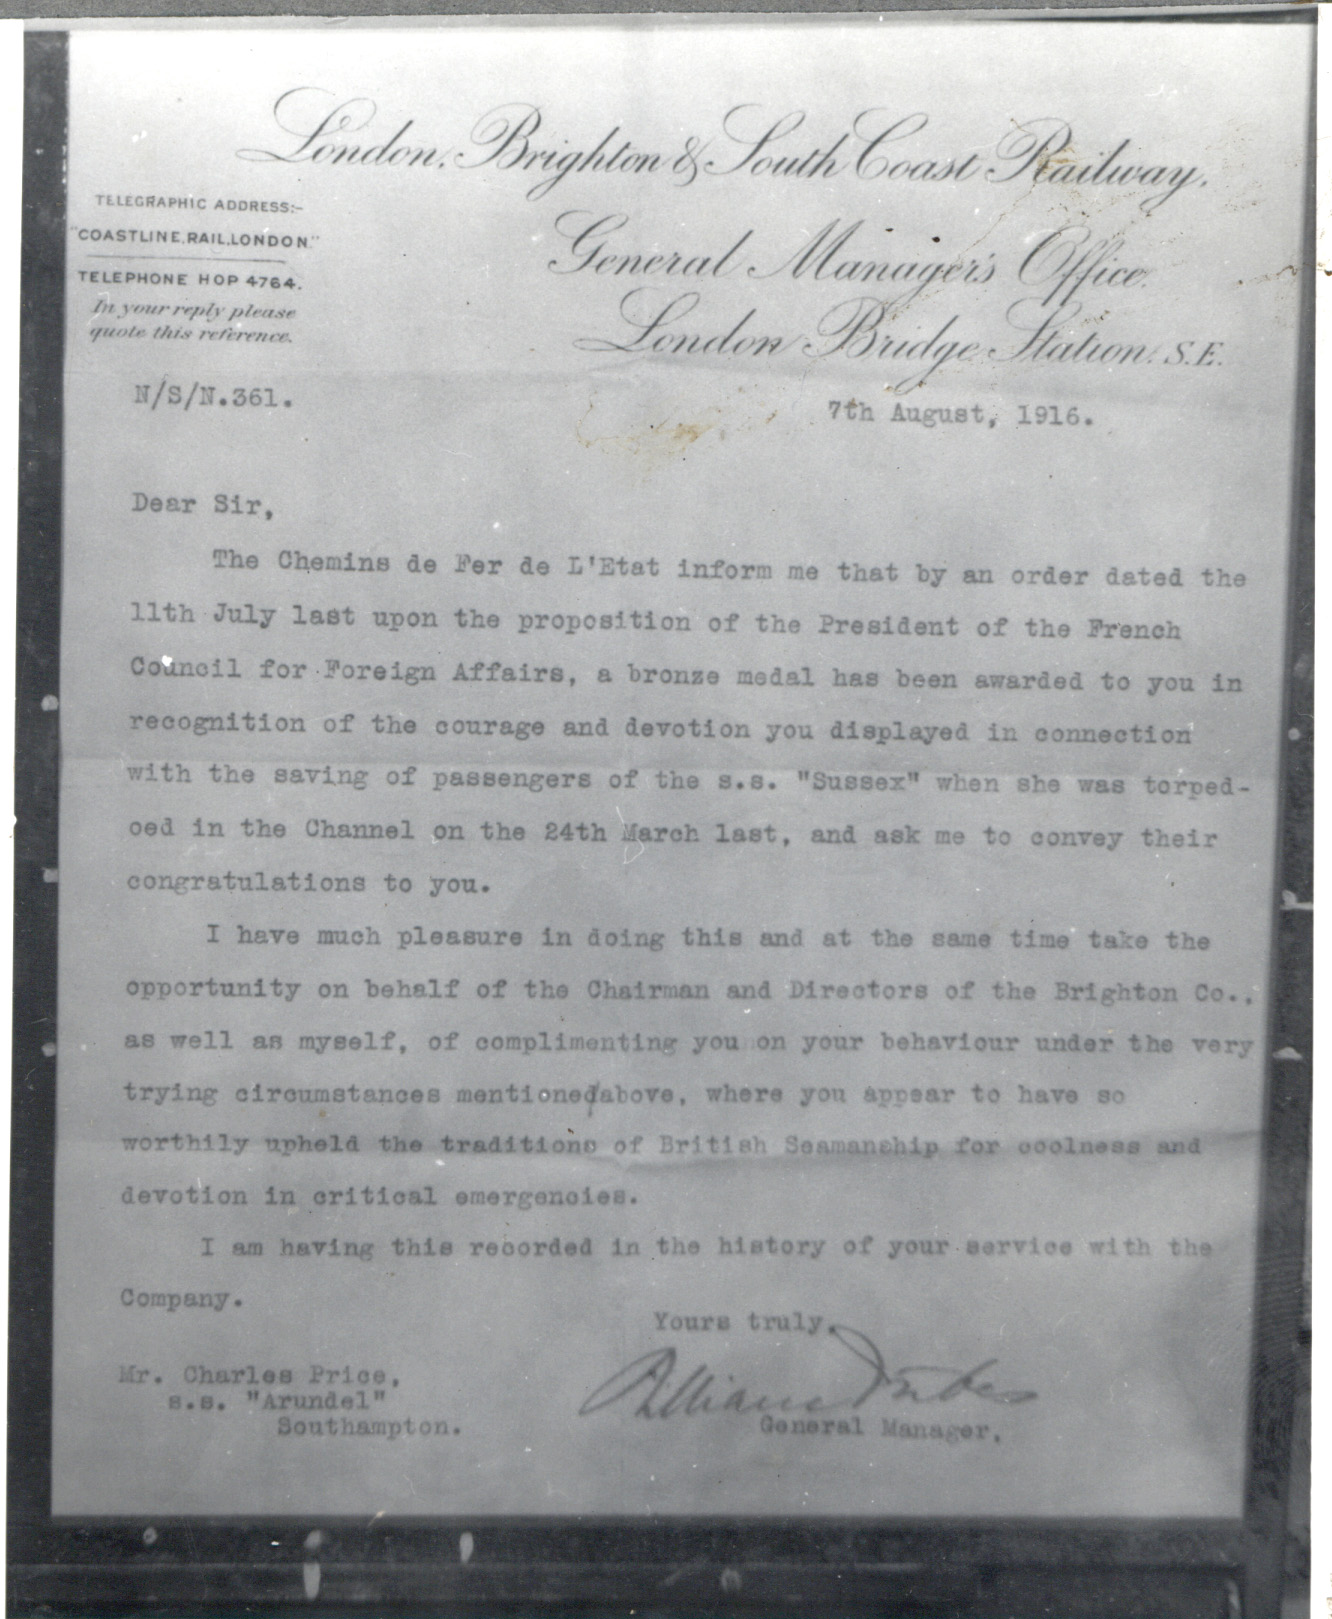 A letter of commendation to Charles Price, a local resident, for his actions following the attack on the SS Sussex. Courtesy of Newhaven Museum